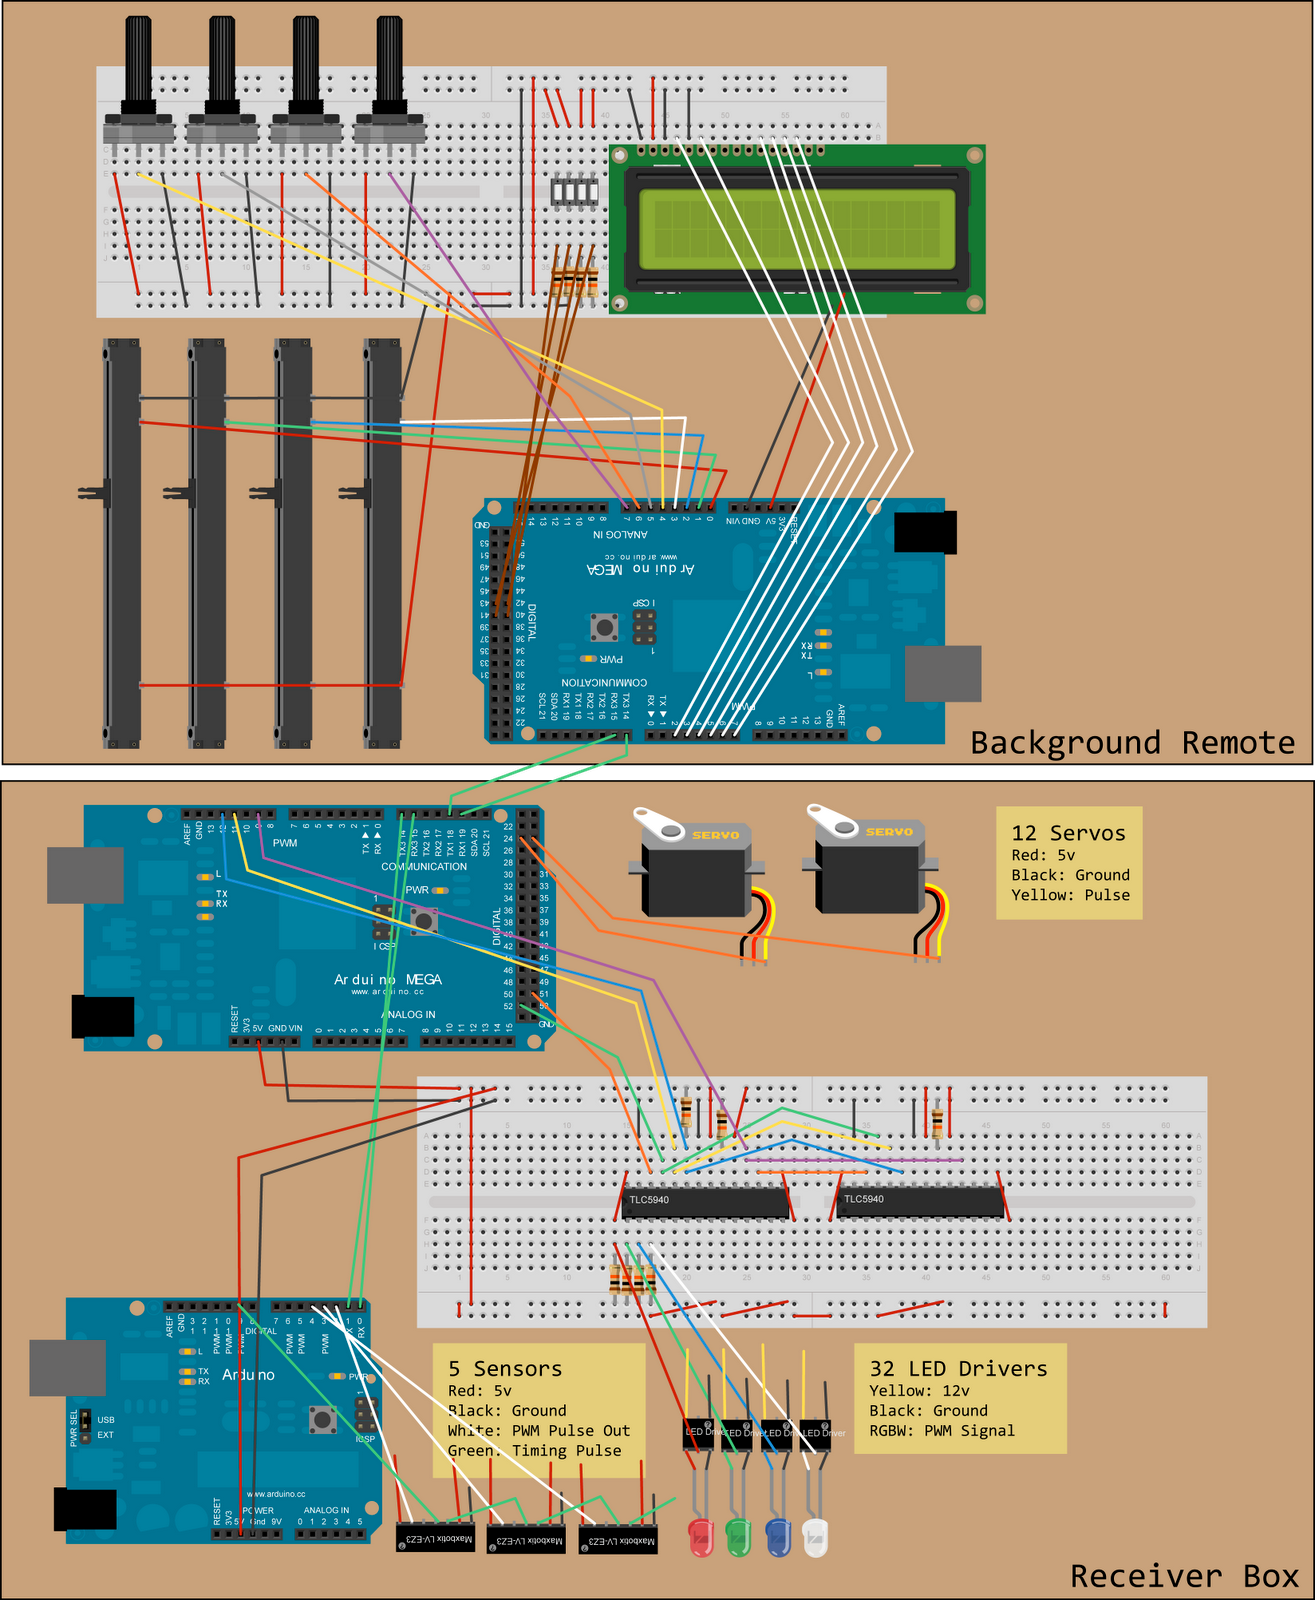 small resolution of this is rough diagram of how the the electronics behind the wall are wired together